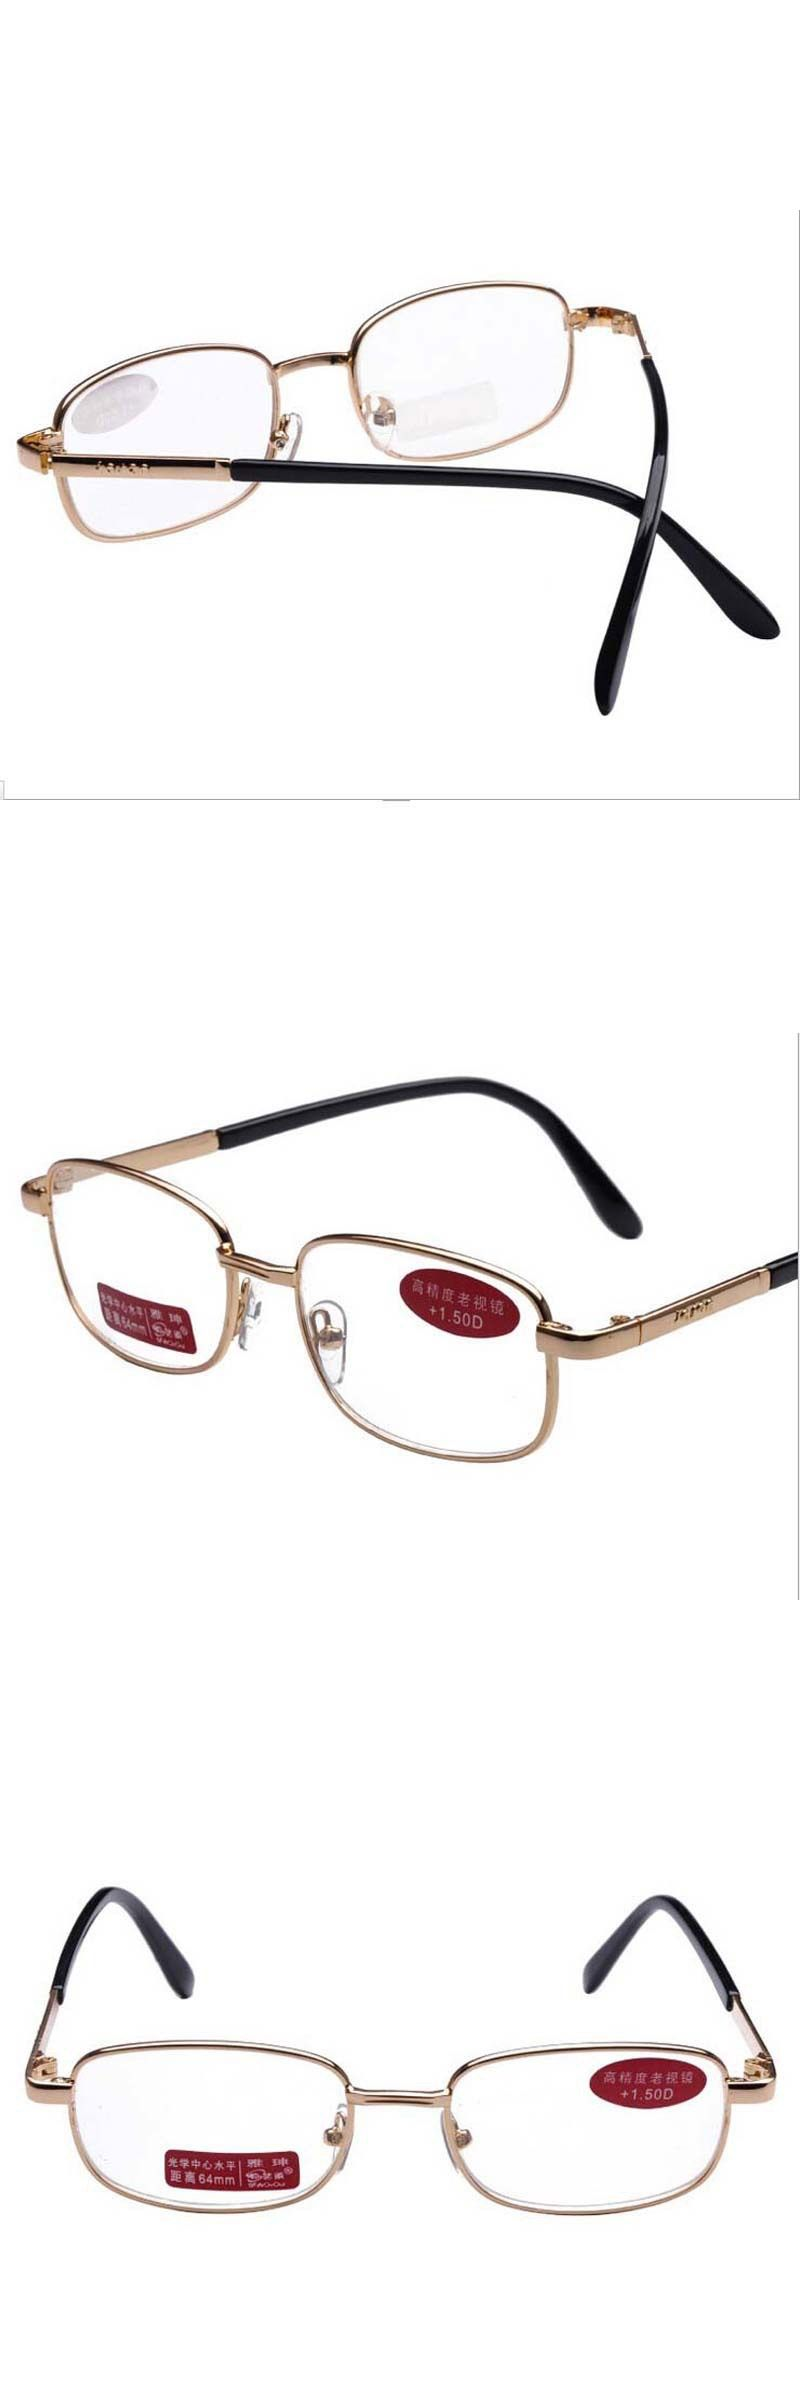 771771285917 Best Reading UPPER CLASS GENTLEMAN antireflection coated reading glasses+1  +1.5 +2 +